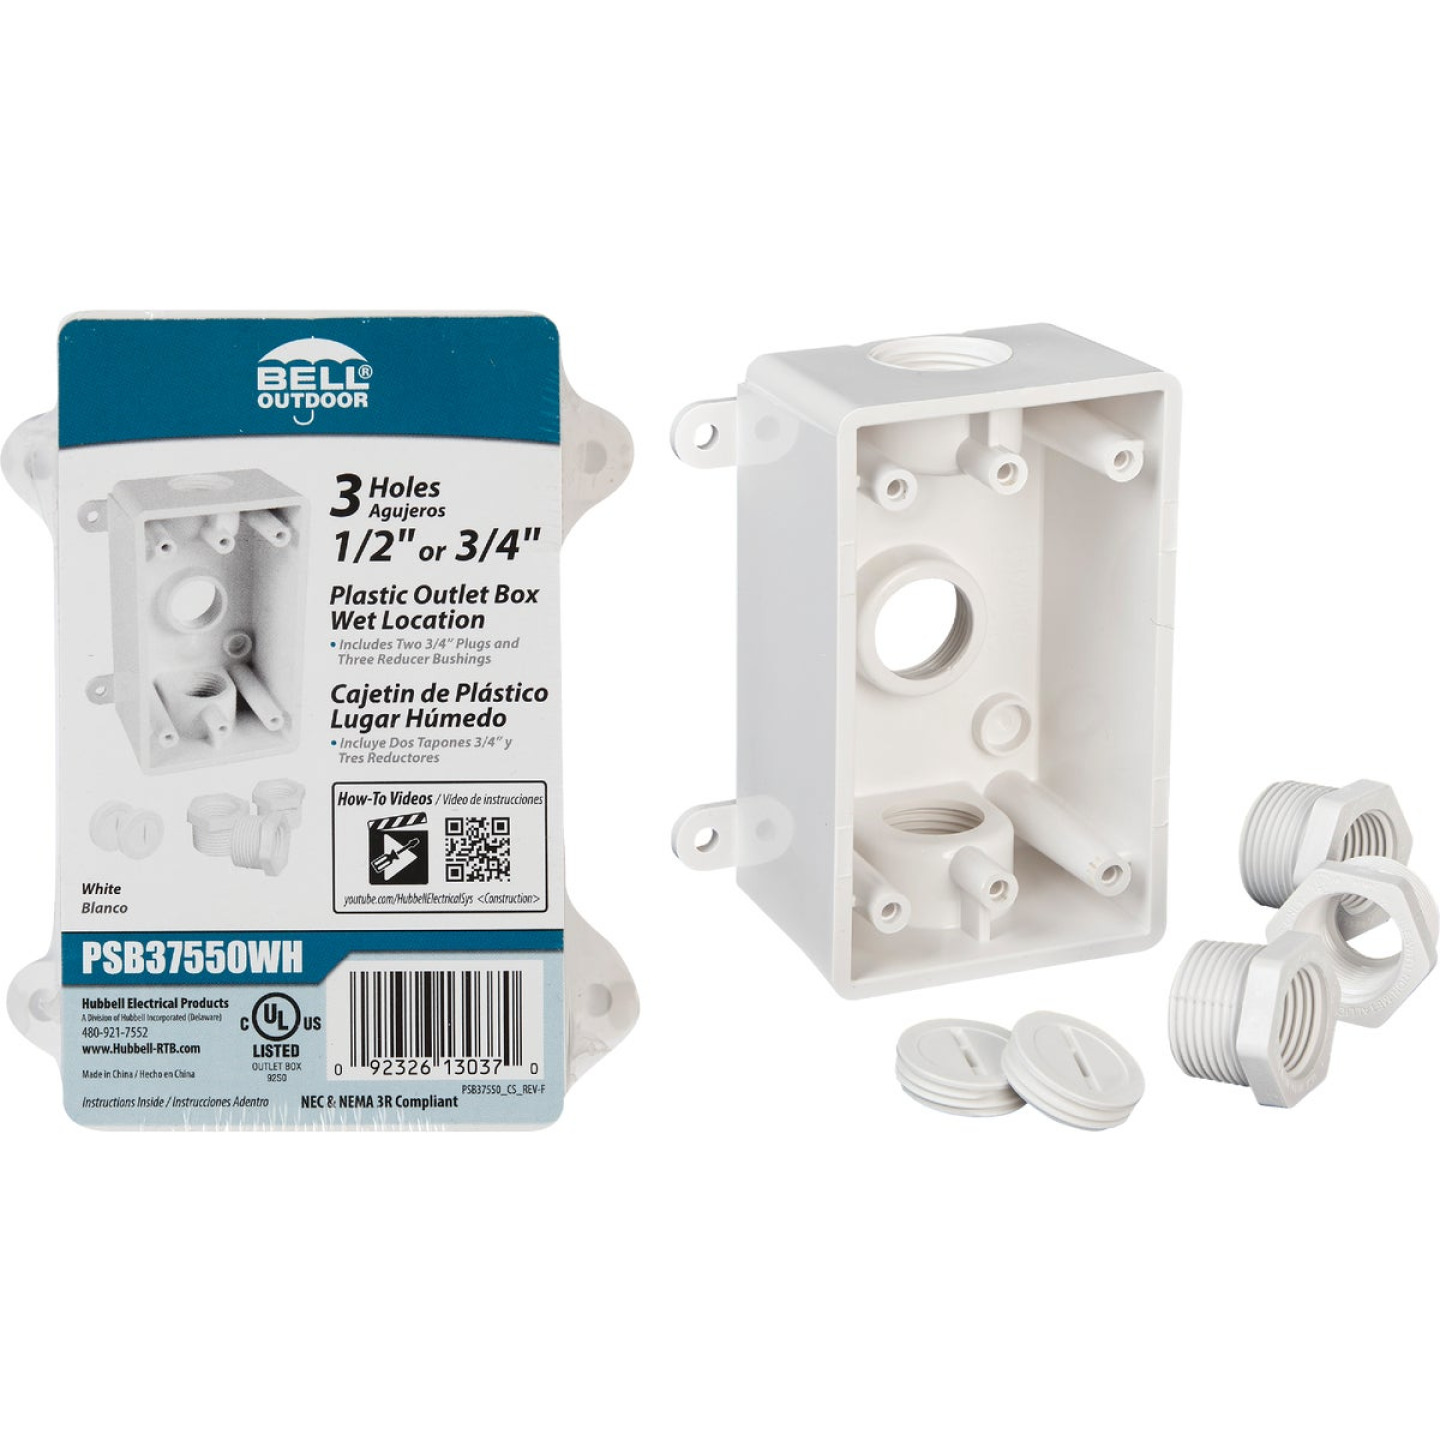 Bell Single Gang 1/2 In.,3/4 In. 3-Outlet White PVC Weatherproof Outdoor Outlet Box Image 1